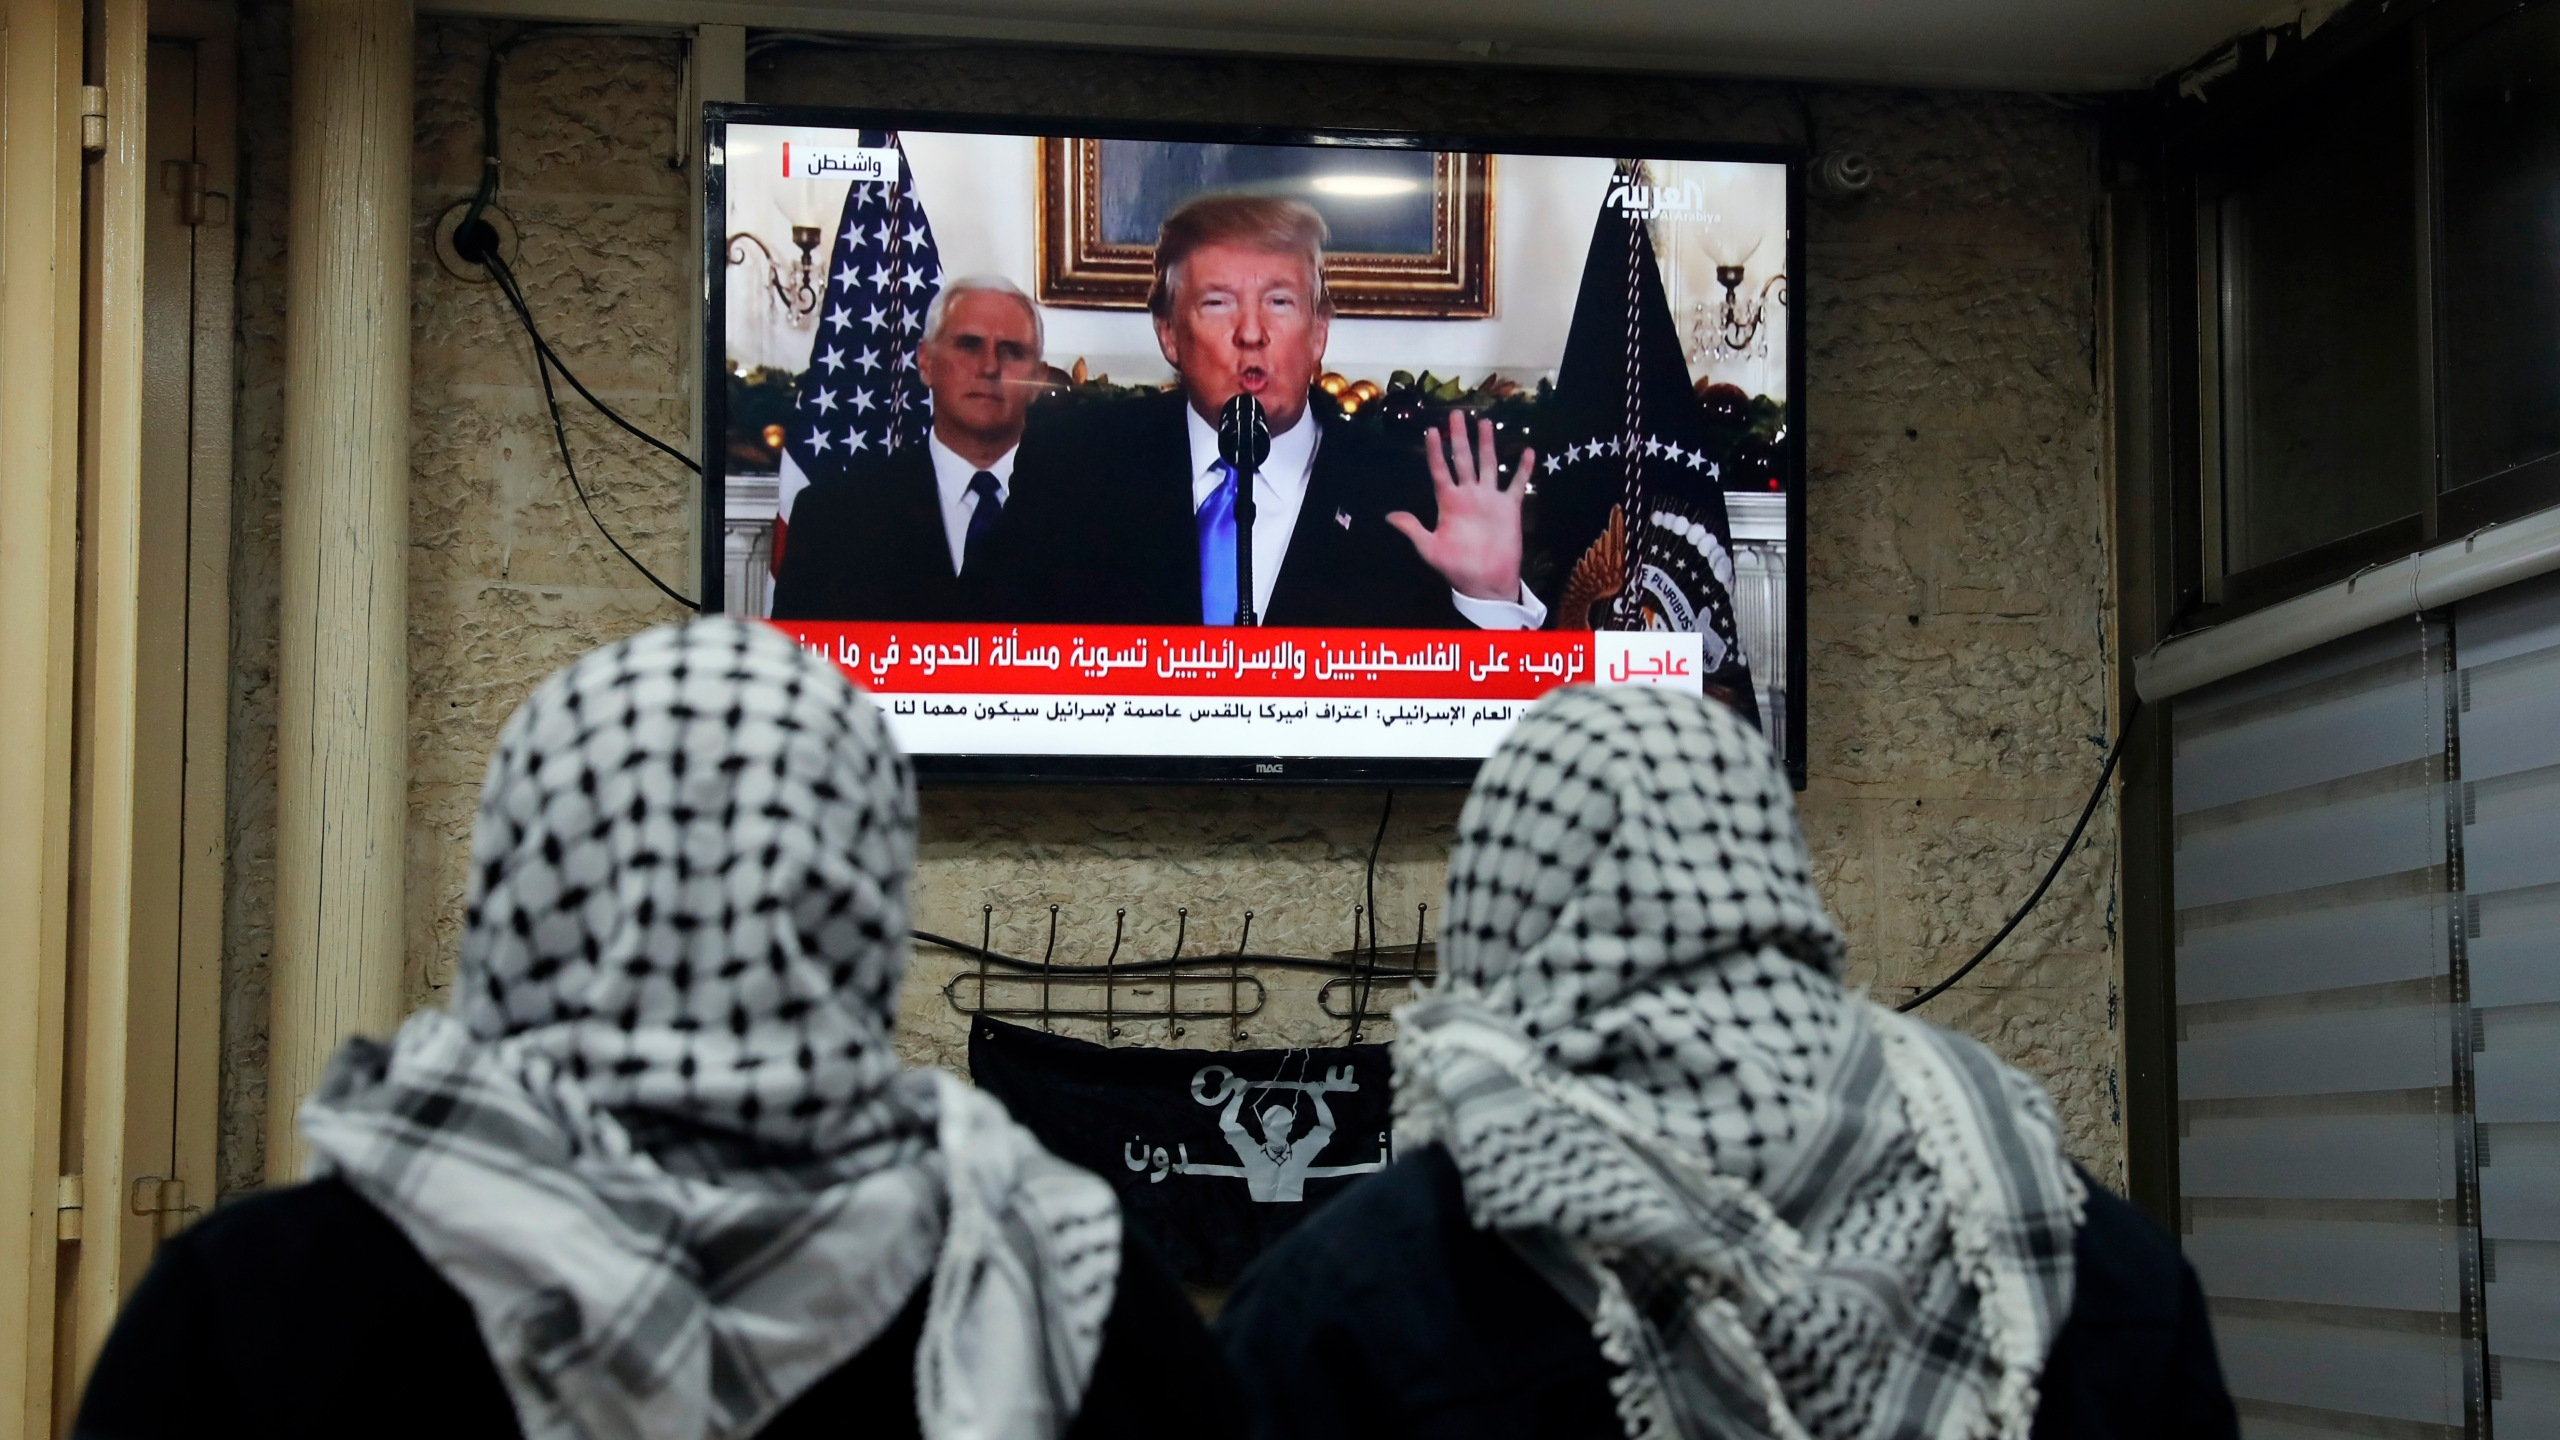 A photo taken on Dec. 6, 2017 shows Palestinian men watching an address given by Donald Trump at a cafe in Jerusalem. (Credit: AHMAD GHARABLI/AFP/Getty Images)